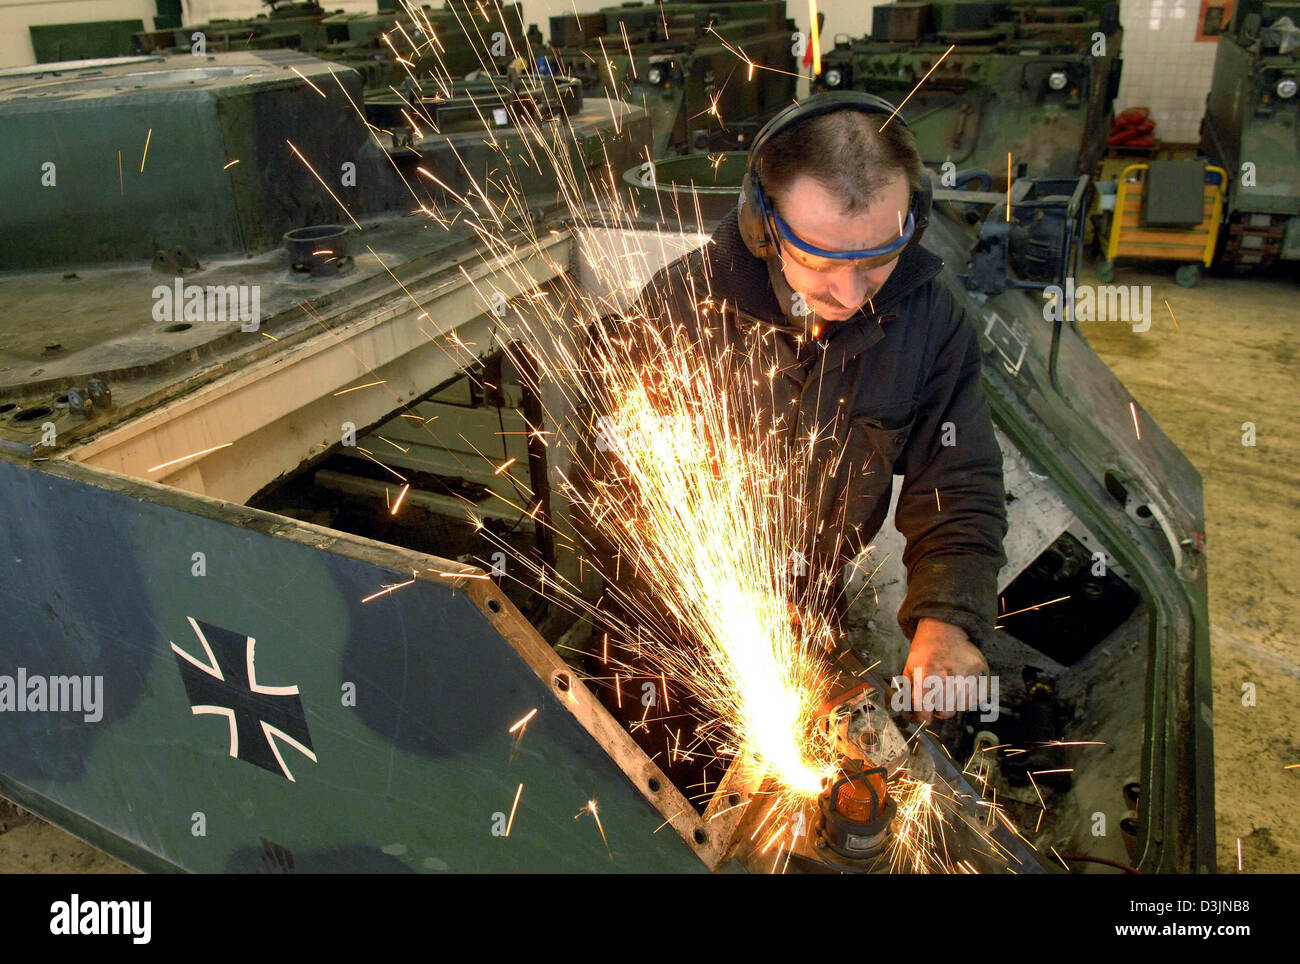 dpa) - An employee of Nammo Buck GmbH dismantles a tank in